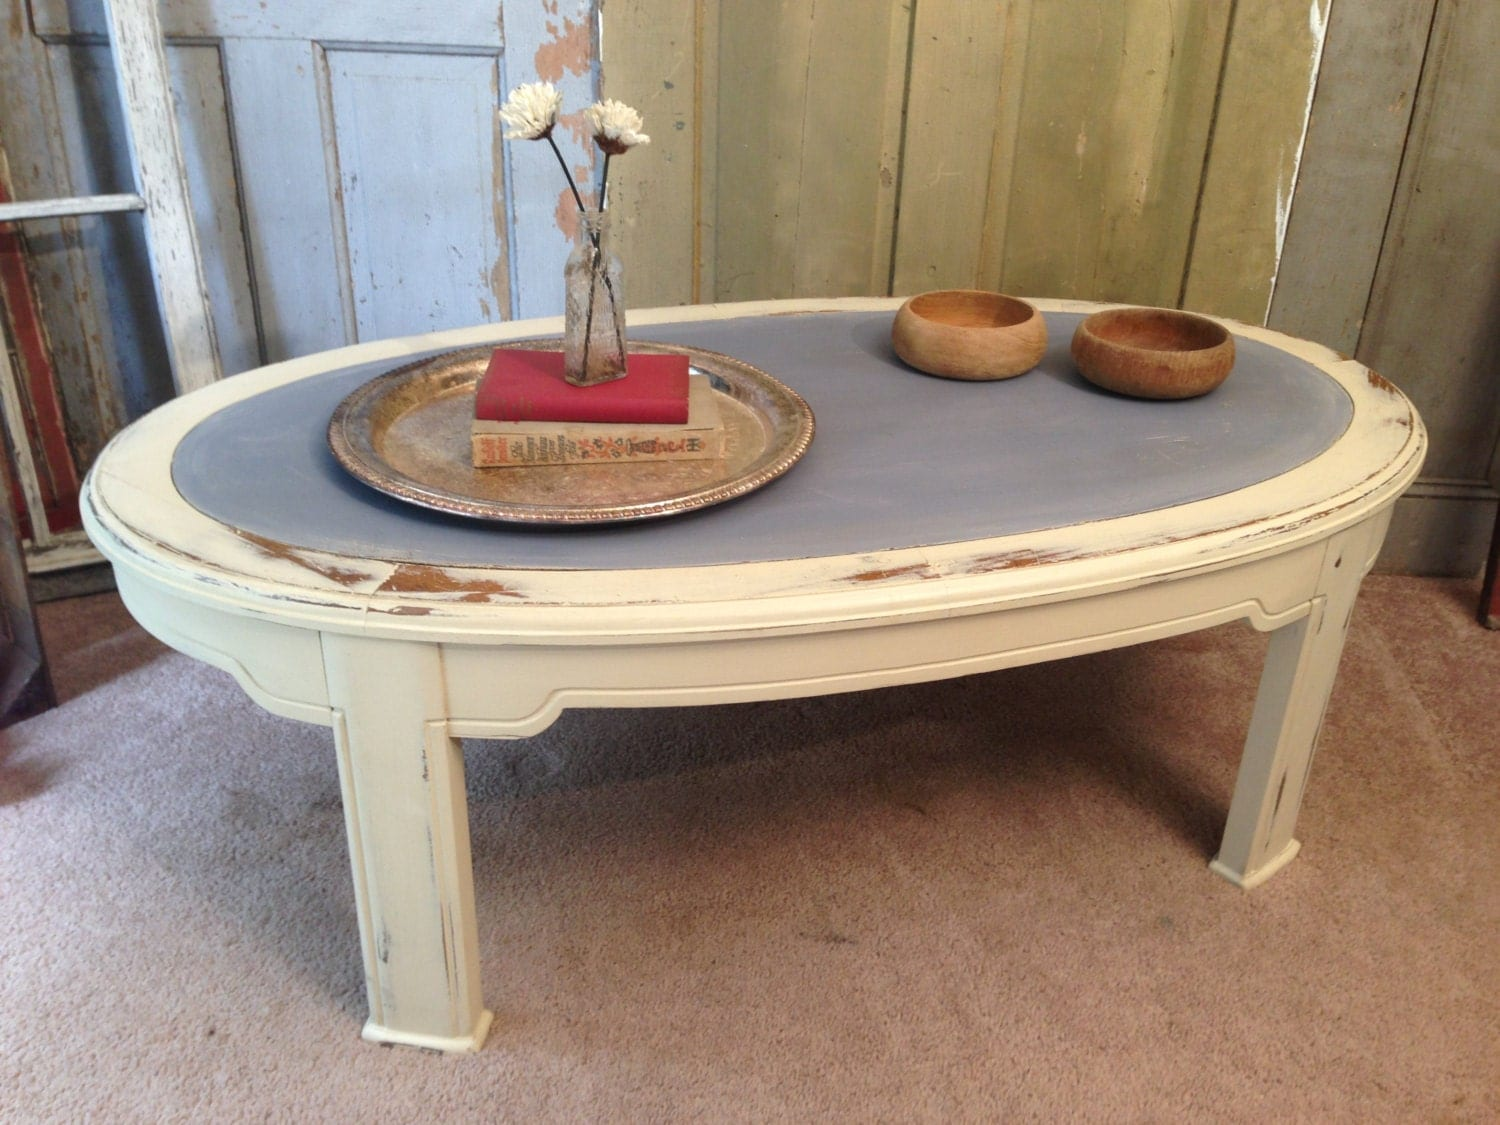 Painted Coffee Tables Painted Coffee Tables Diy 100 Coffee Table Repurposed 35 Best Furniture